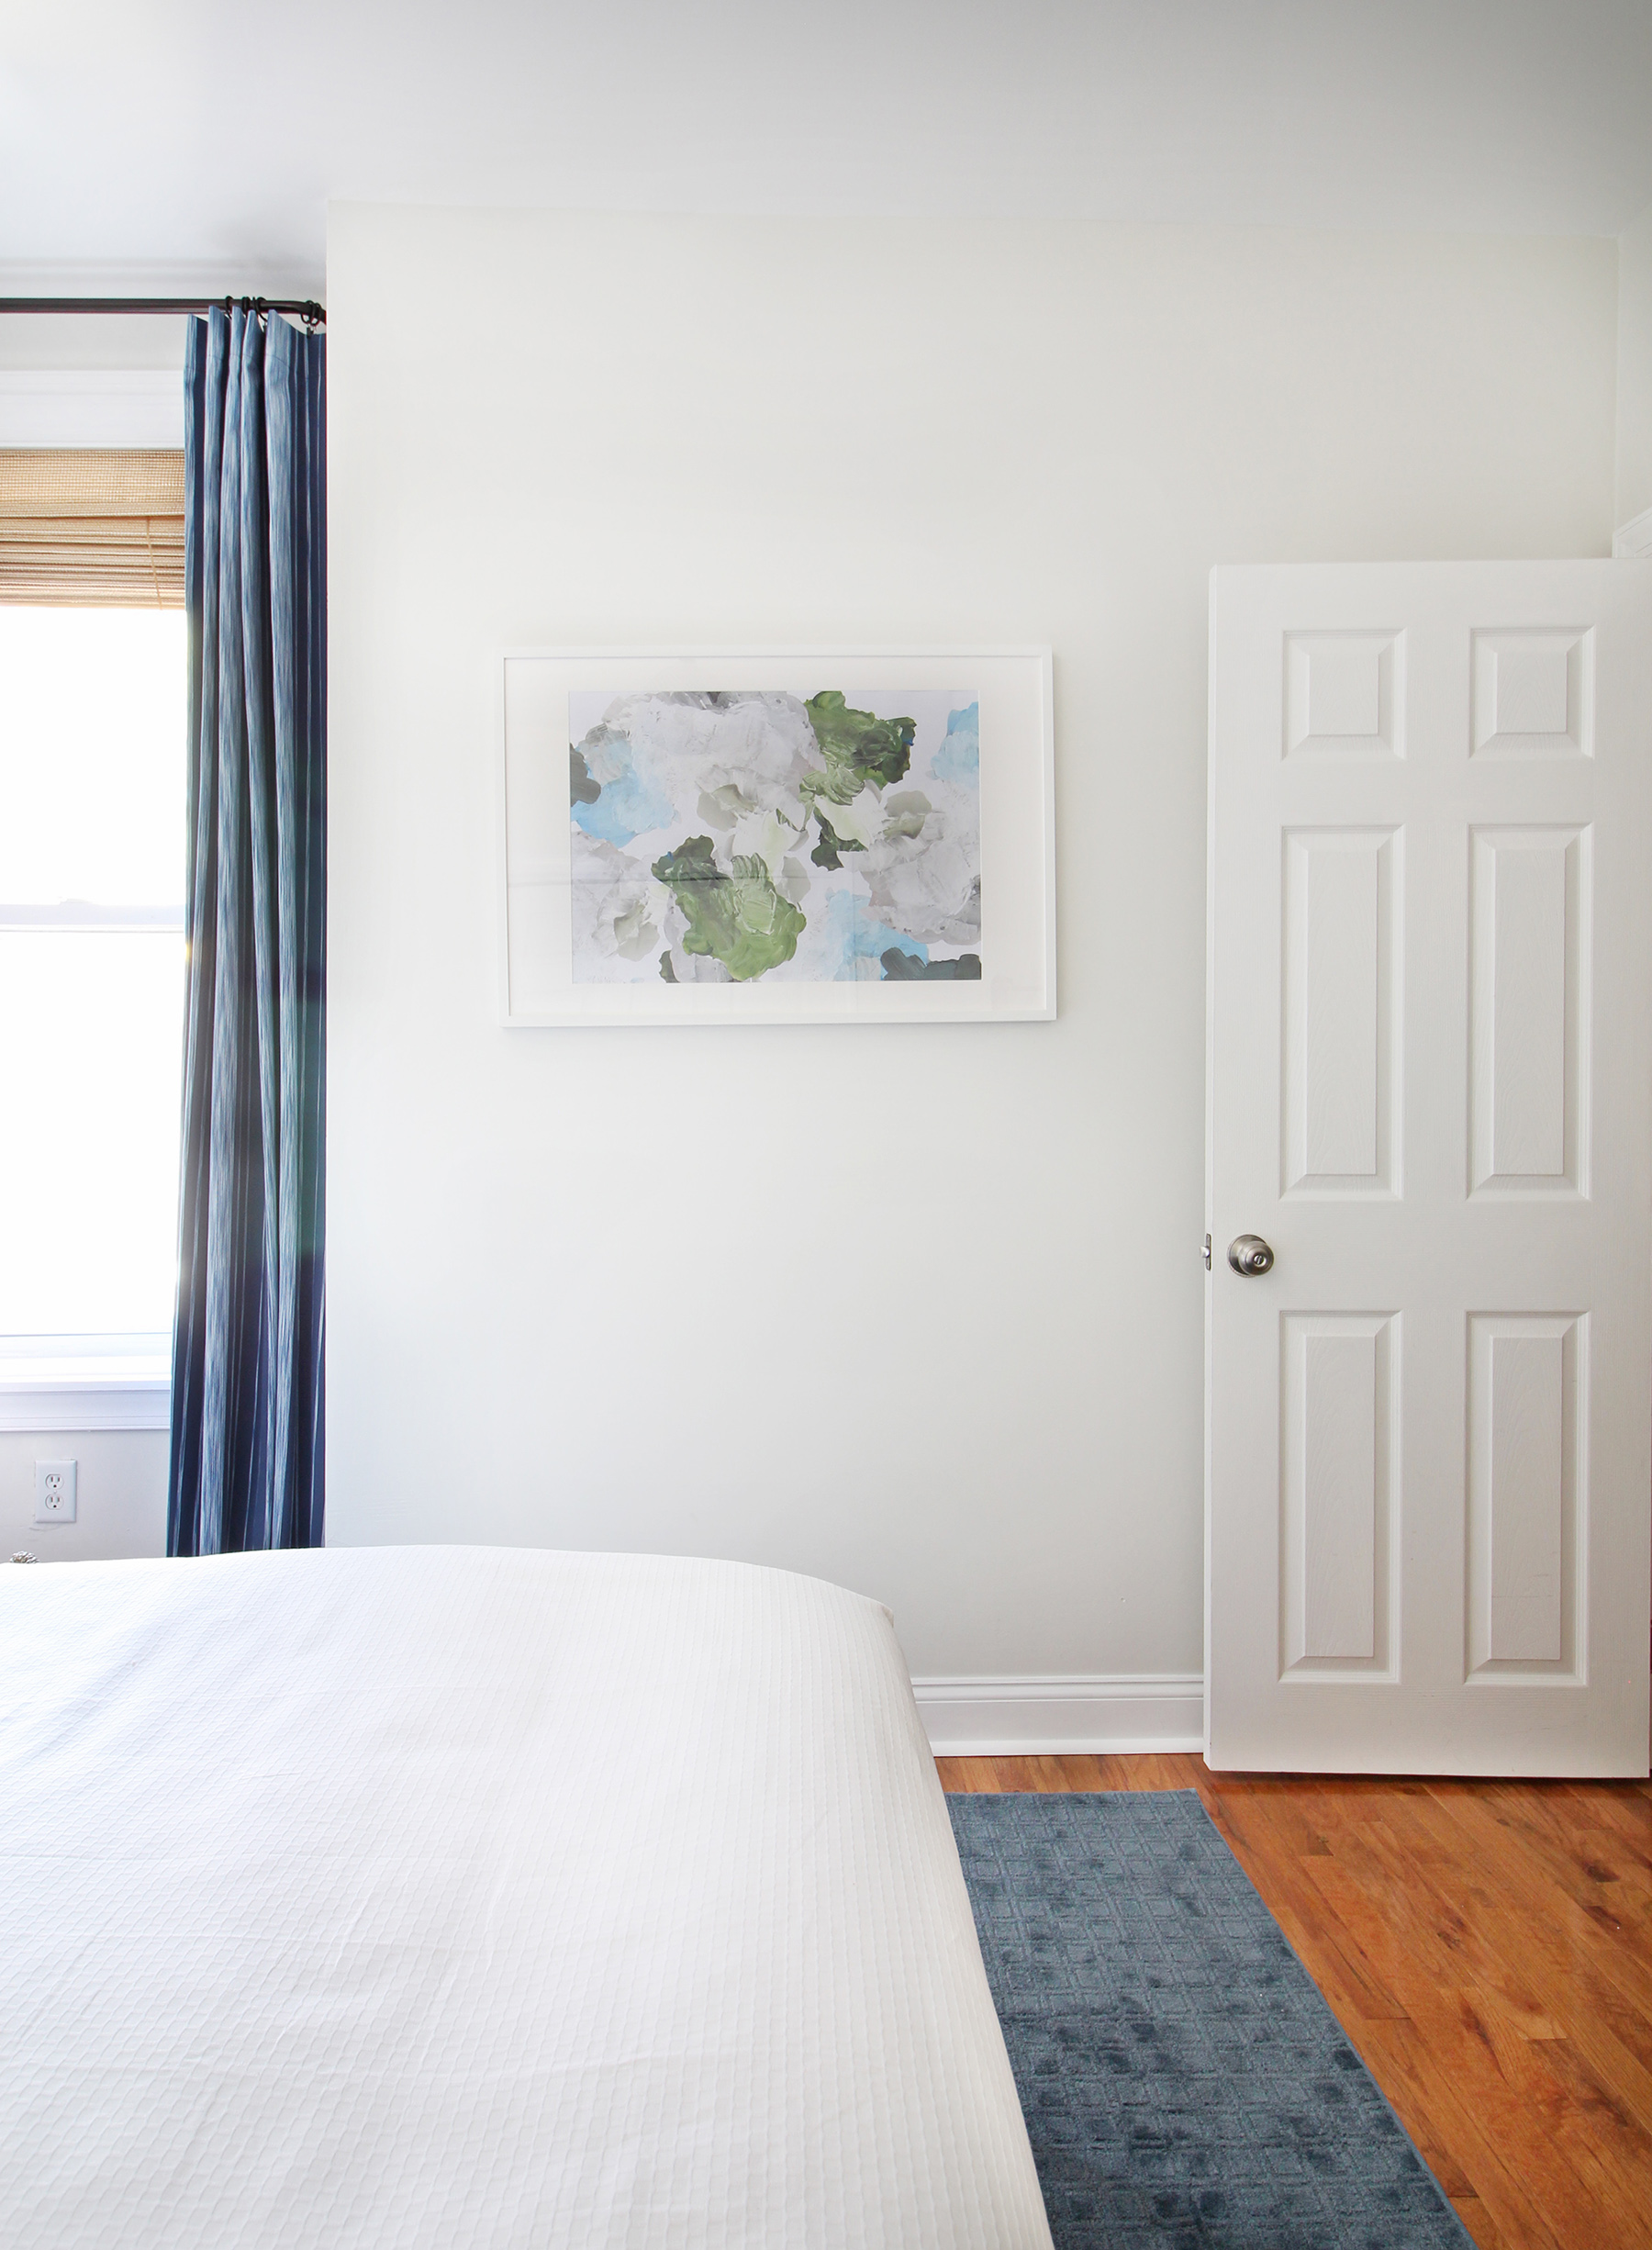 The big One Room Challenge reveal for my eclectic modern farmhouse guest bedroom is up on the blog! Come on over and see the blue-green floral wallpaper, my marble topped vintage nightstands, and my take on modernizing an antique dresser! A piece of abstract paint palette art is perfect for this spot on the wall. || Design: Mix & Match Design Company